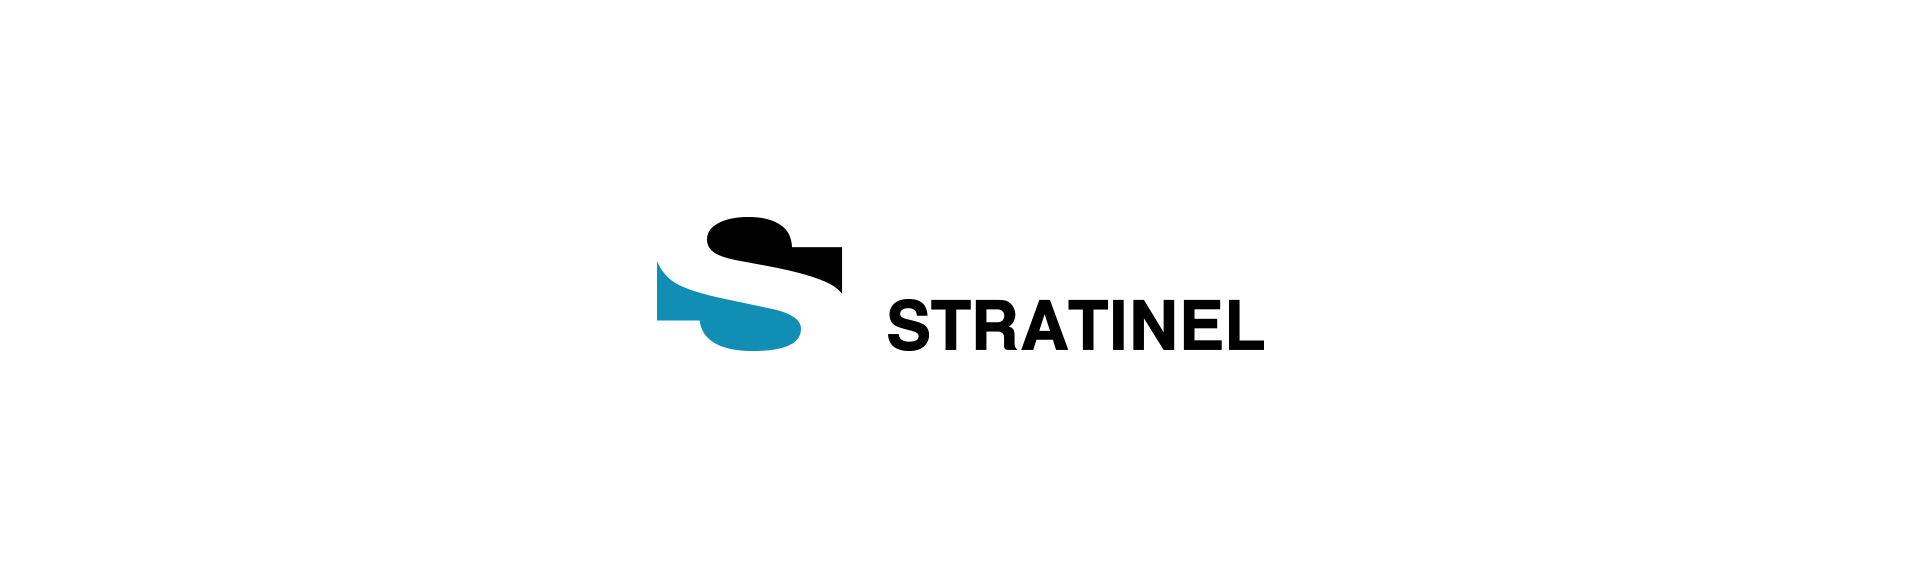 Stratinel logo design - engineering company